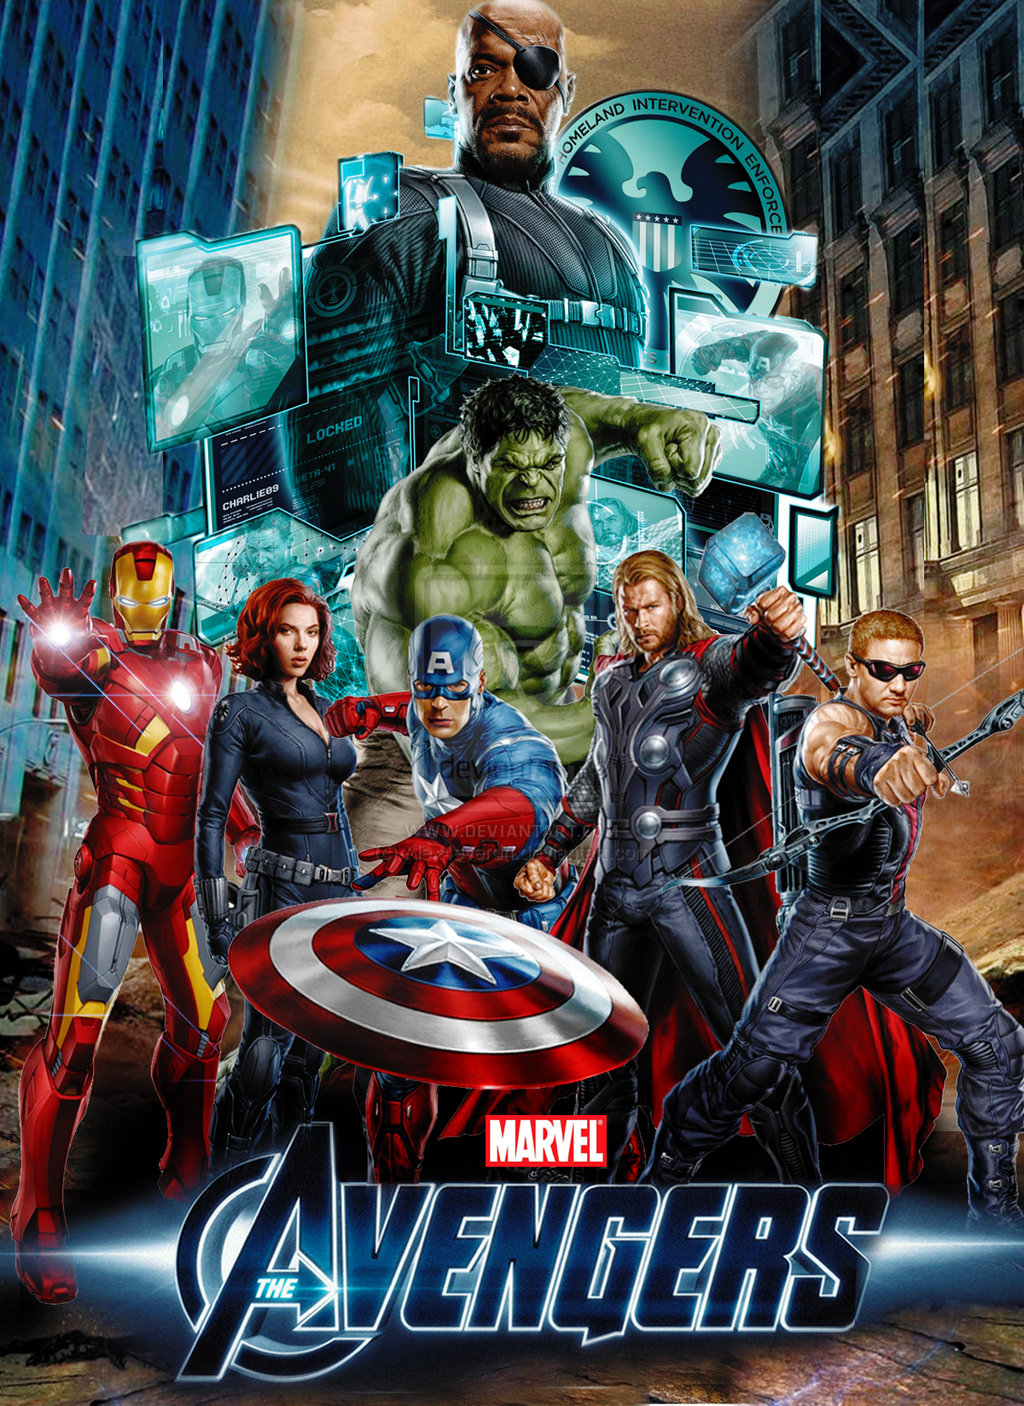 marvel s the avengers domestic debut sets all time industry record at 200 3 million film